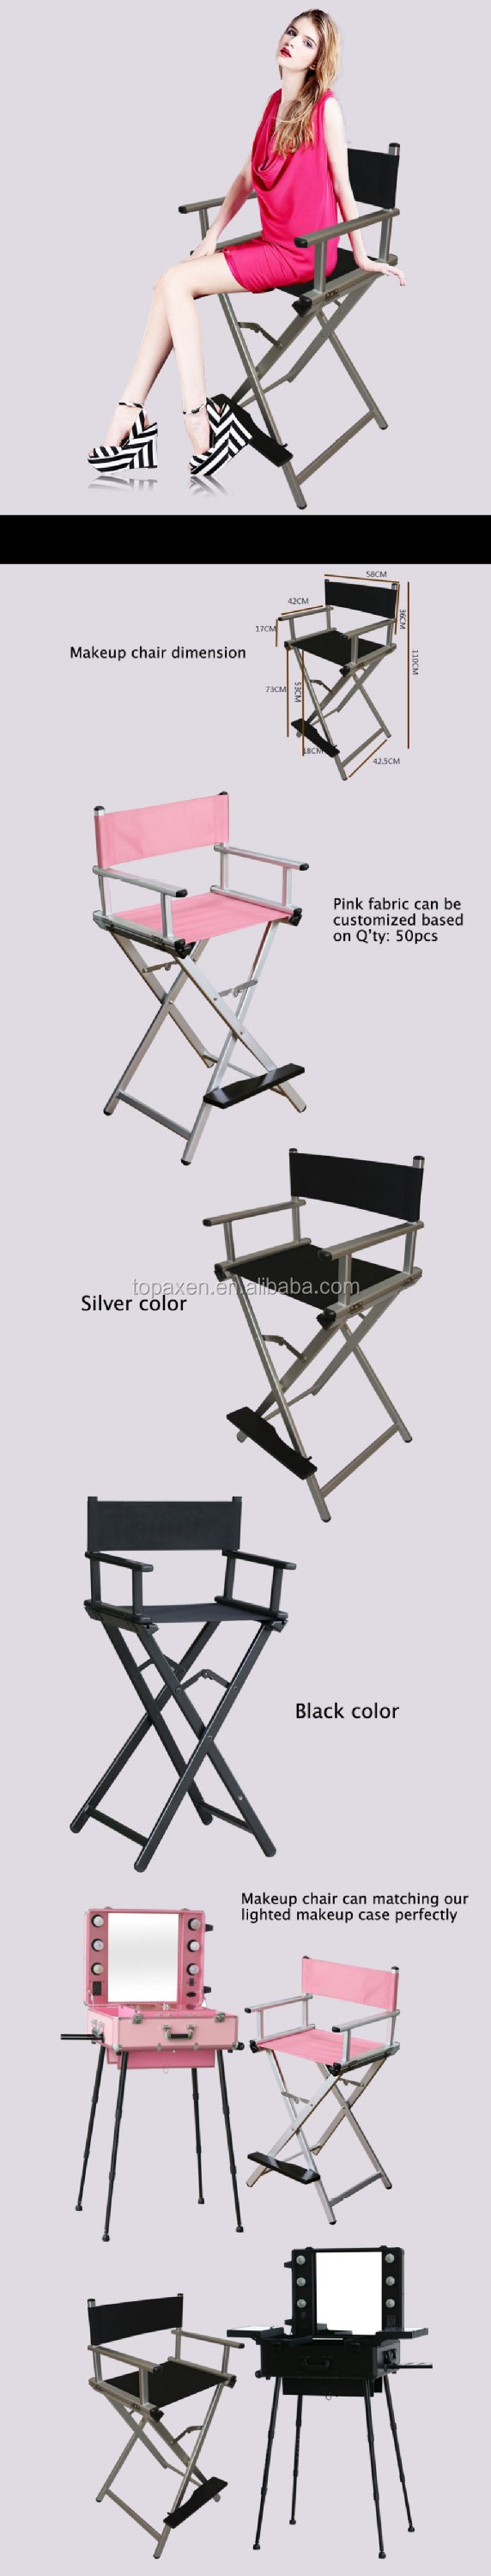 Portable makeup chair - He High Grade Silver Aluminum Makeup Chair Director Chair Folding Portable Makeup Chair Director